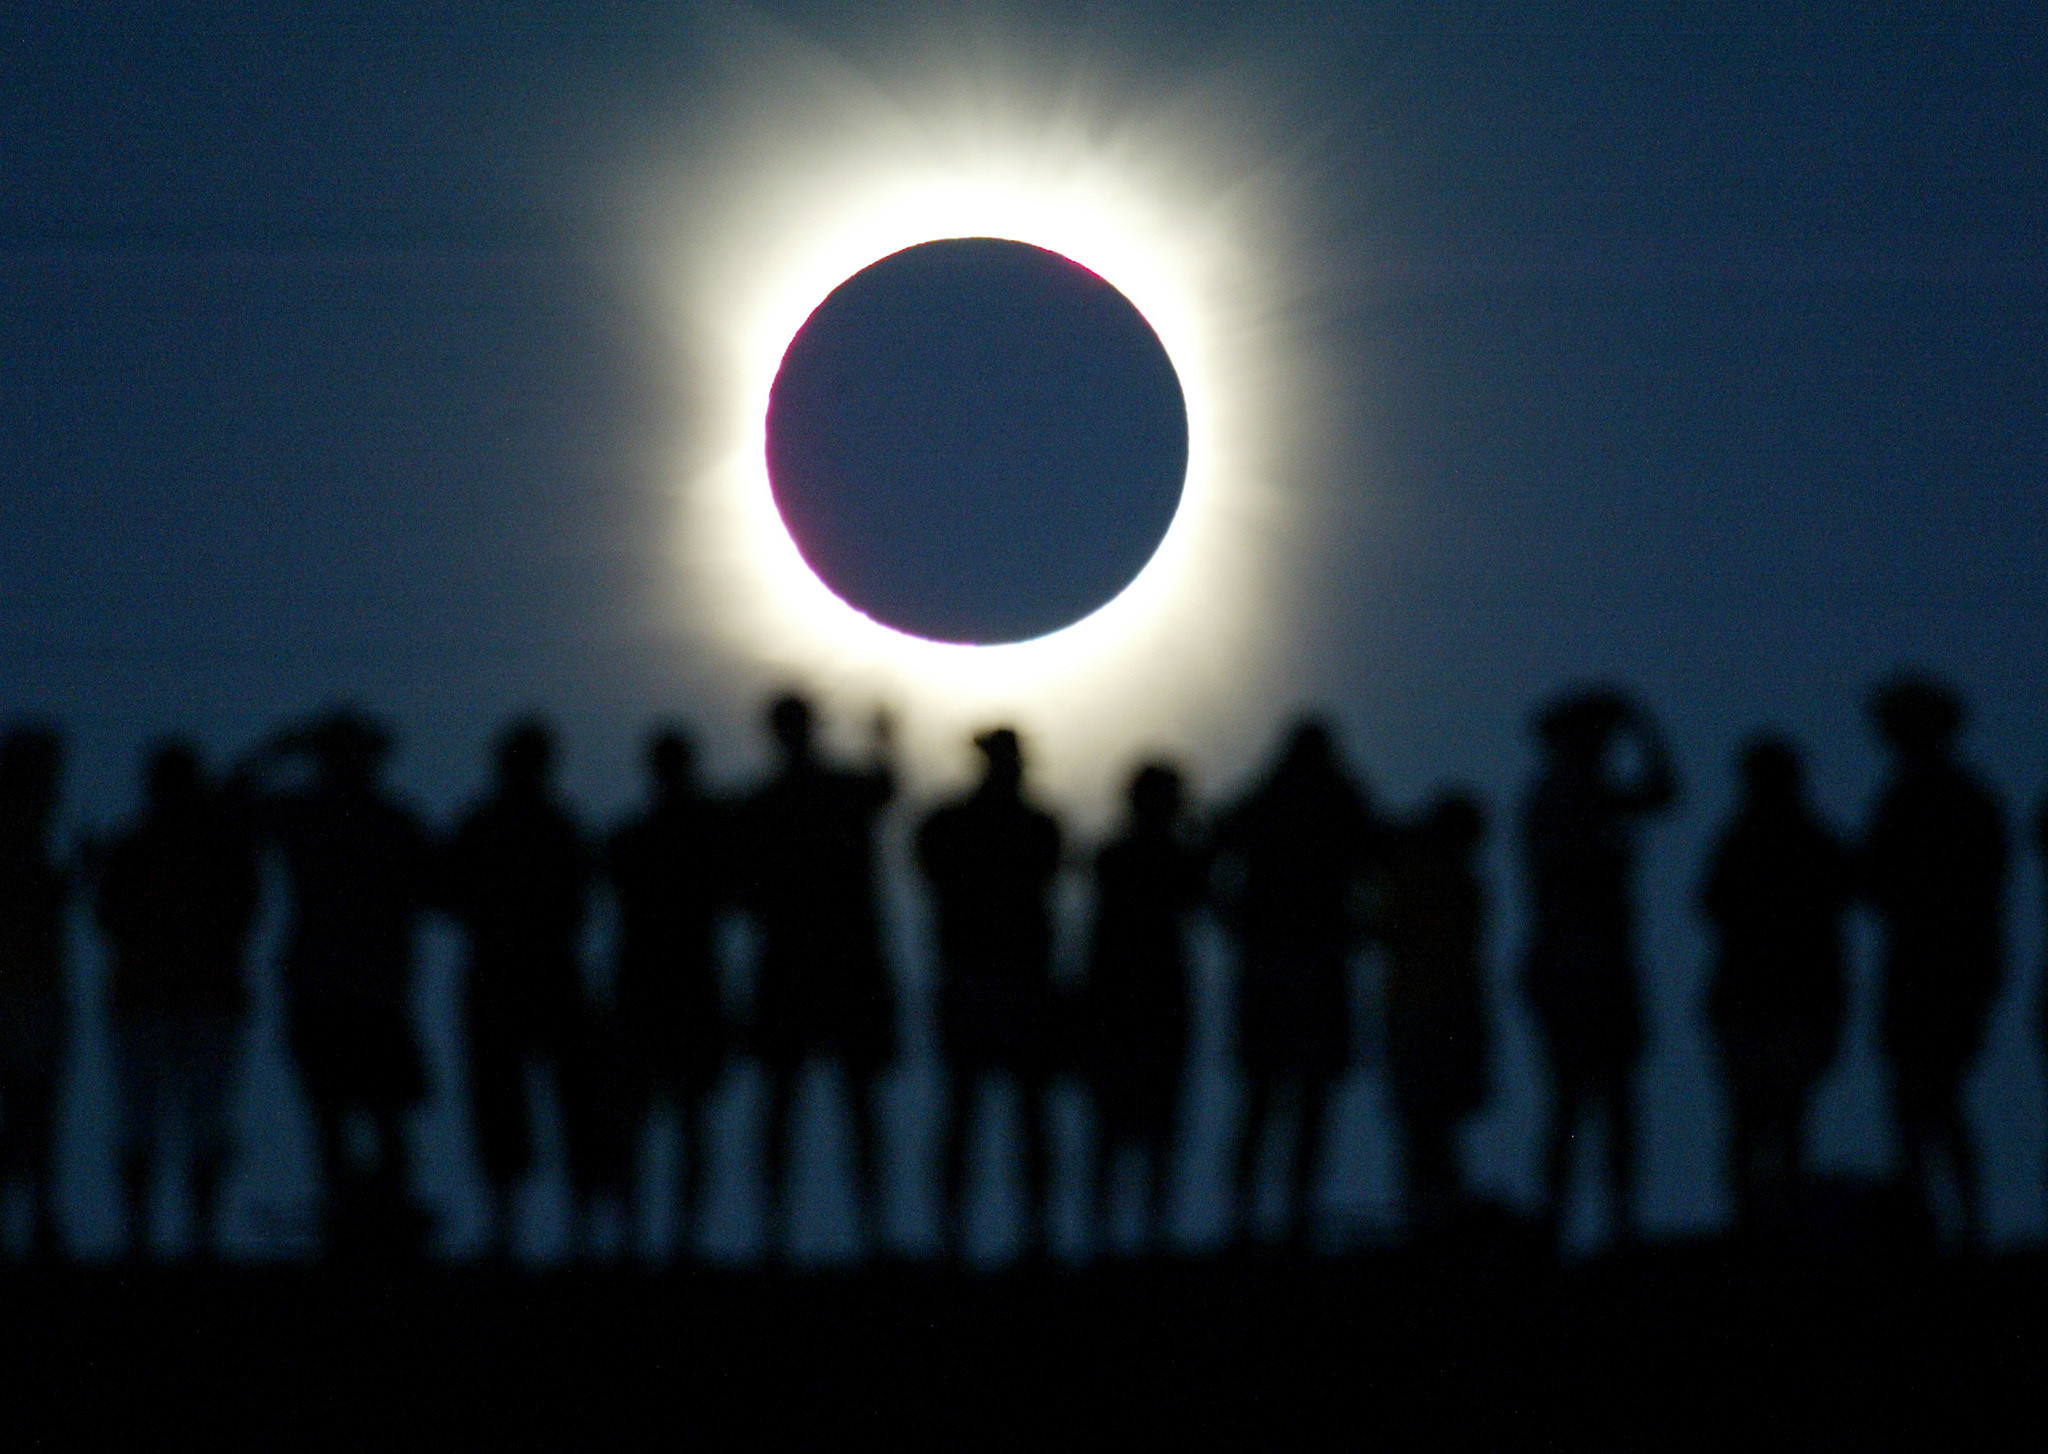 Tourists watch the sun being blocked by the moon during a solar eclipsein the Australian outback town of Lyndhurst, located around 700kilometres (437 miles) north of Adelaide December 4, 2002. The town isone of only four in Australia where the 26 second-long full eclipse ofthe sun could be seen and occurred during celebrations for the Year ofthe Outback. The shadow path of whats called totality, where the'diamond ring' effect becomes visible, can be seen on a path that isjust 36 kilometres wide. REUTERS/David GrayDG/CP - RP3DRHXWXYAA